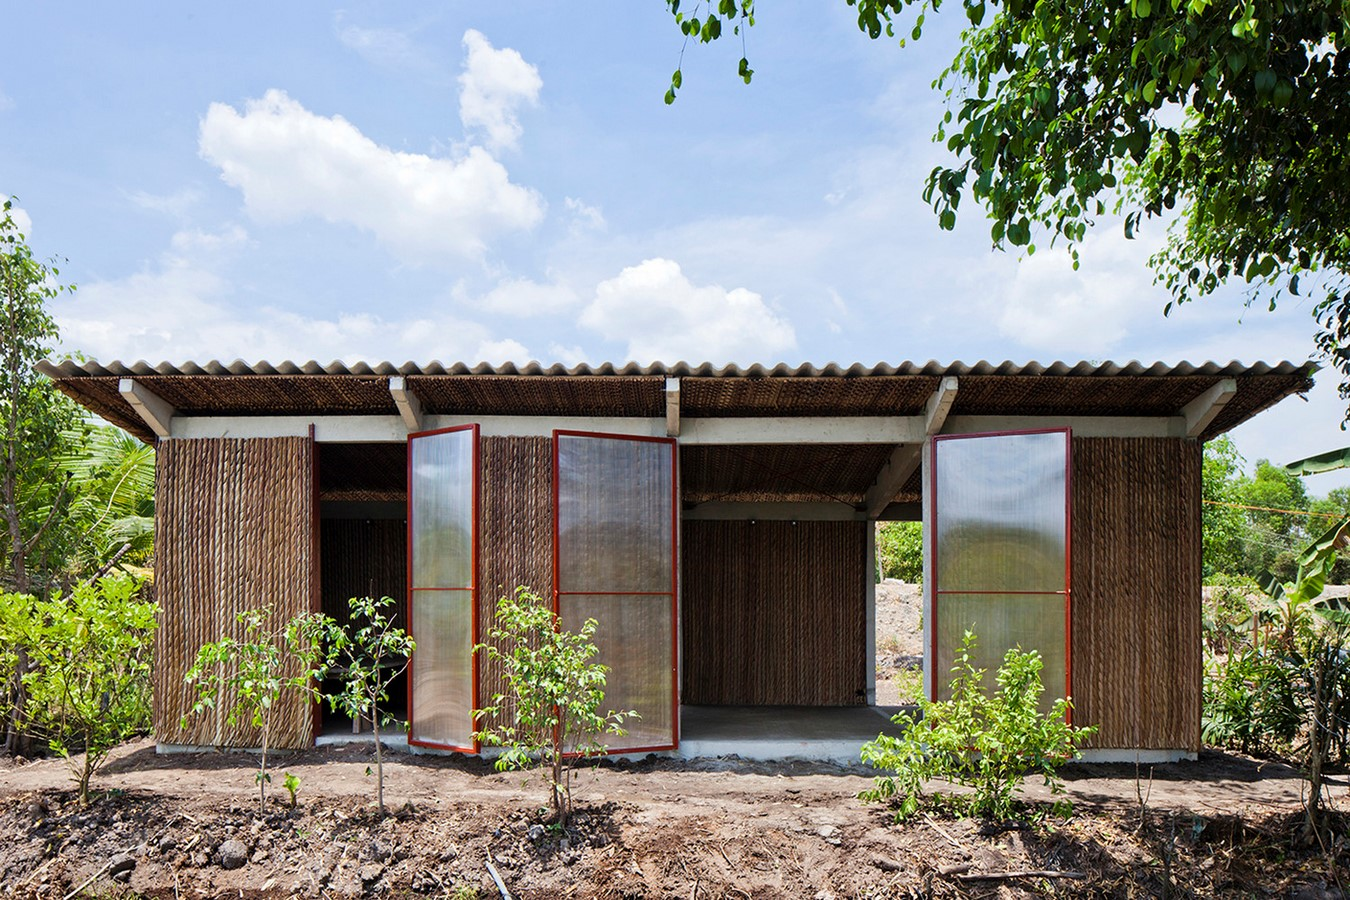 10 Examples of Low cost housing - Sheet10